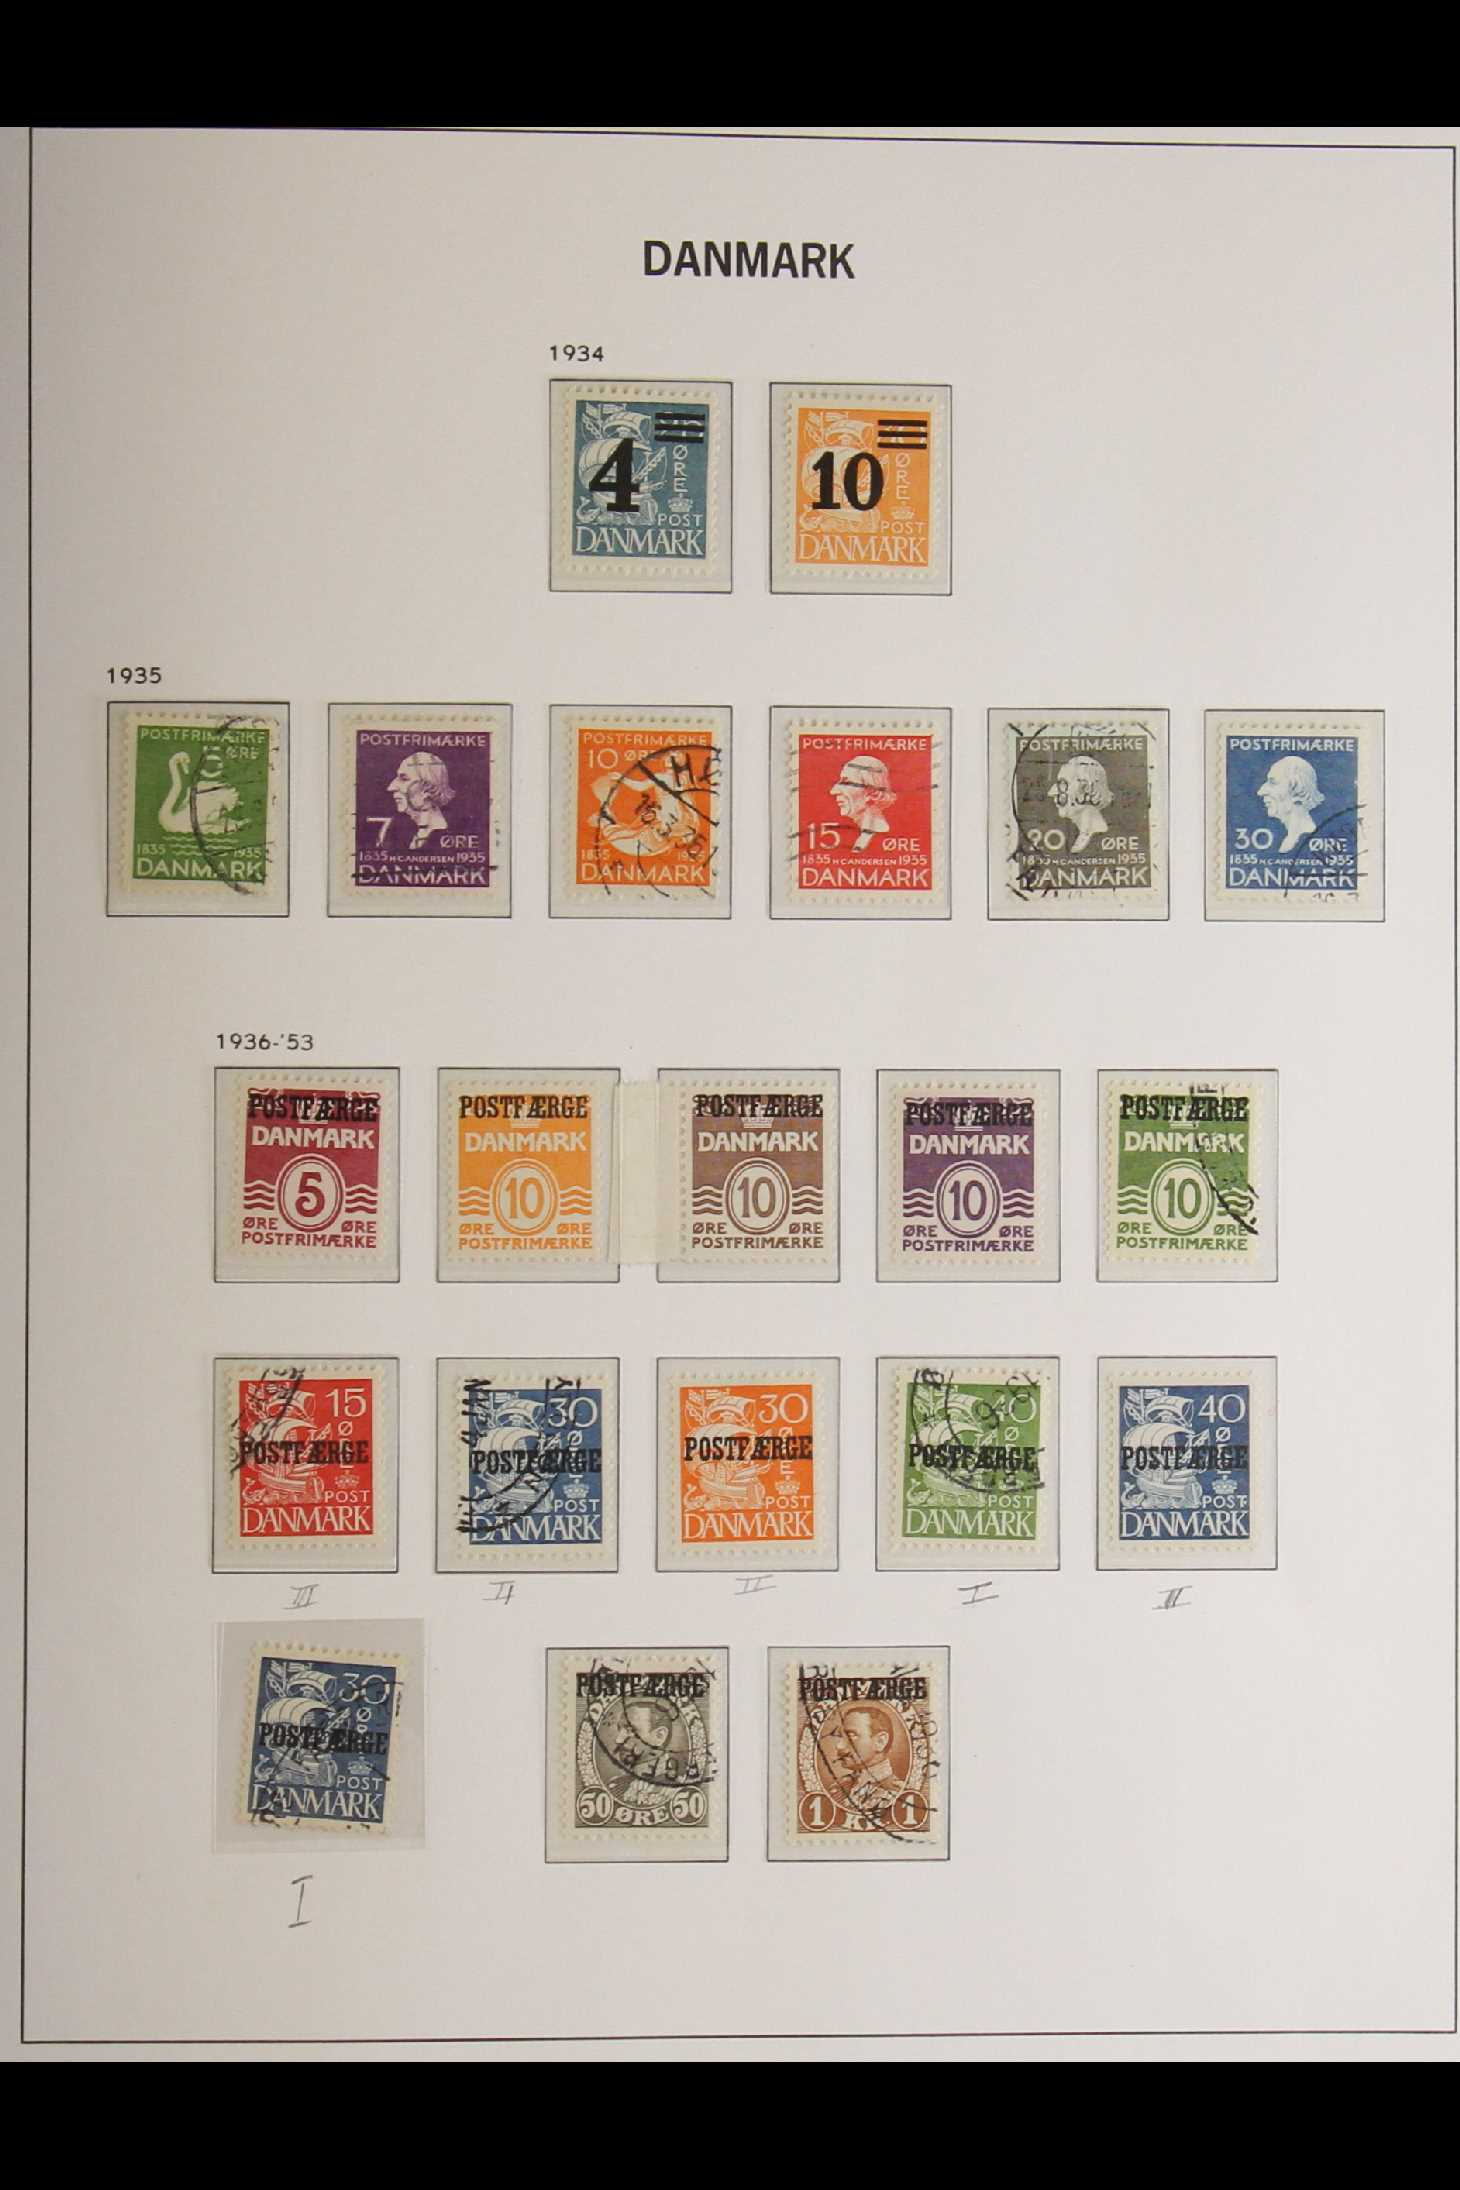 DENMARK 1882-1969 mint and used collection in an album incl. 1882 (small corner figures) 5 ore and - Image 8 of 15